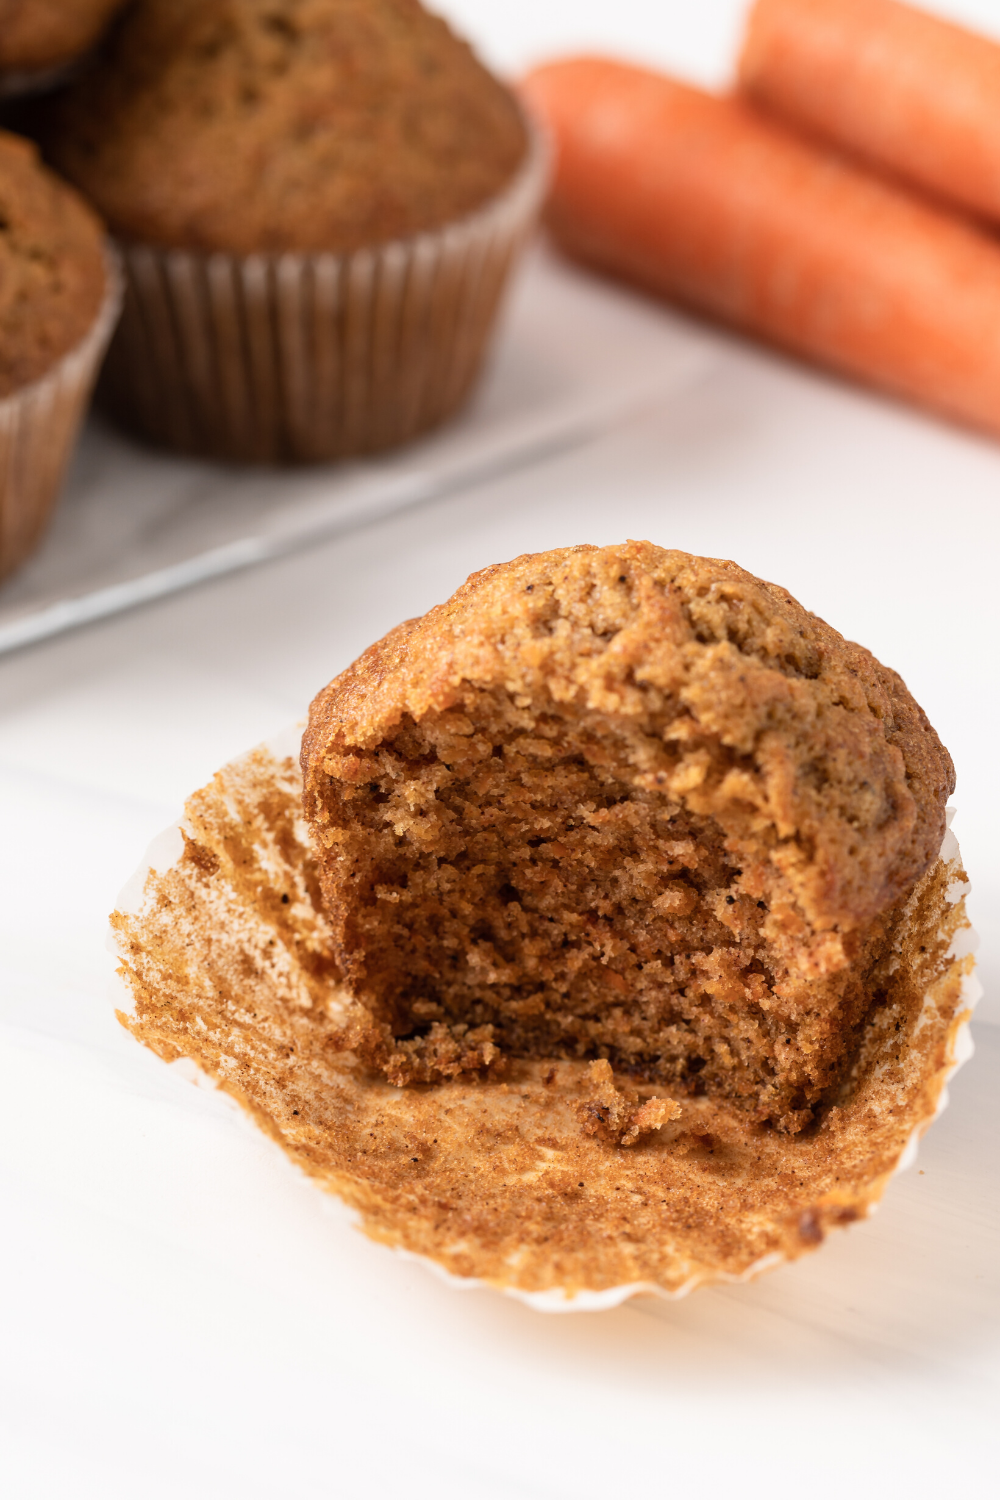 The Best Carrot Muffins Recipe Carrot Muffins Carrot Muffins Easy Baking Recipes